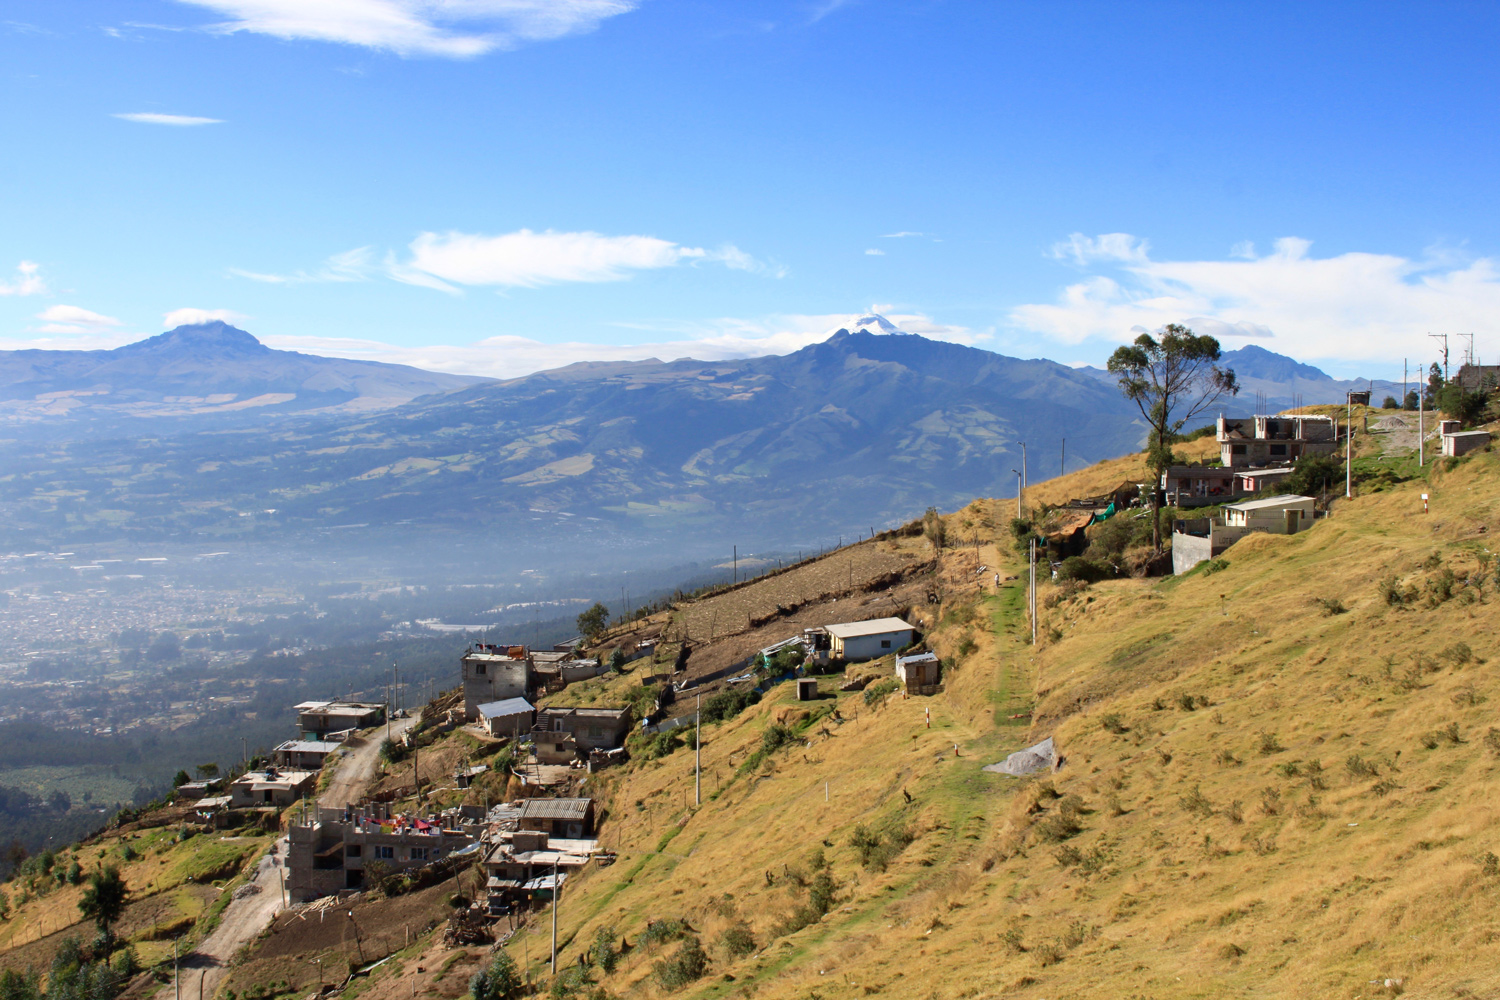 Landschaft in Quito, Ecuador.